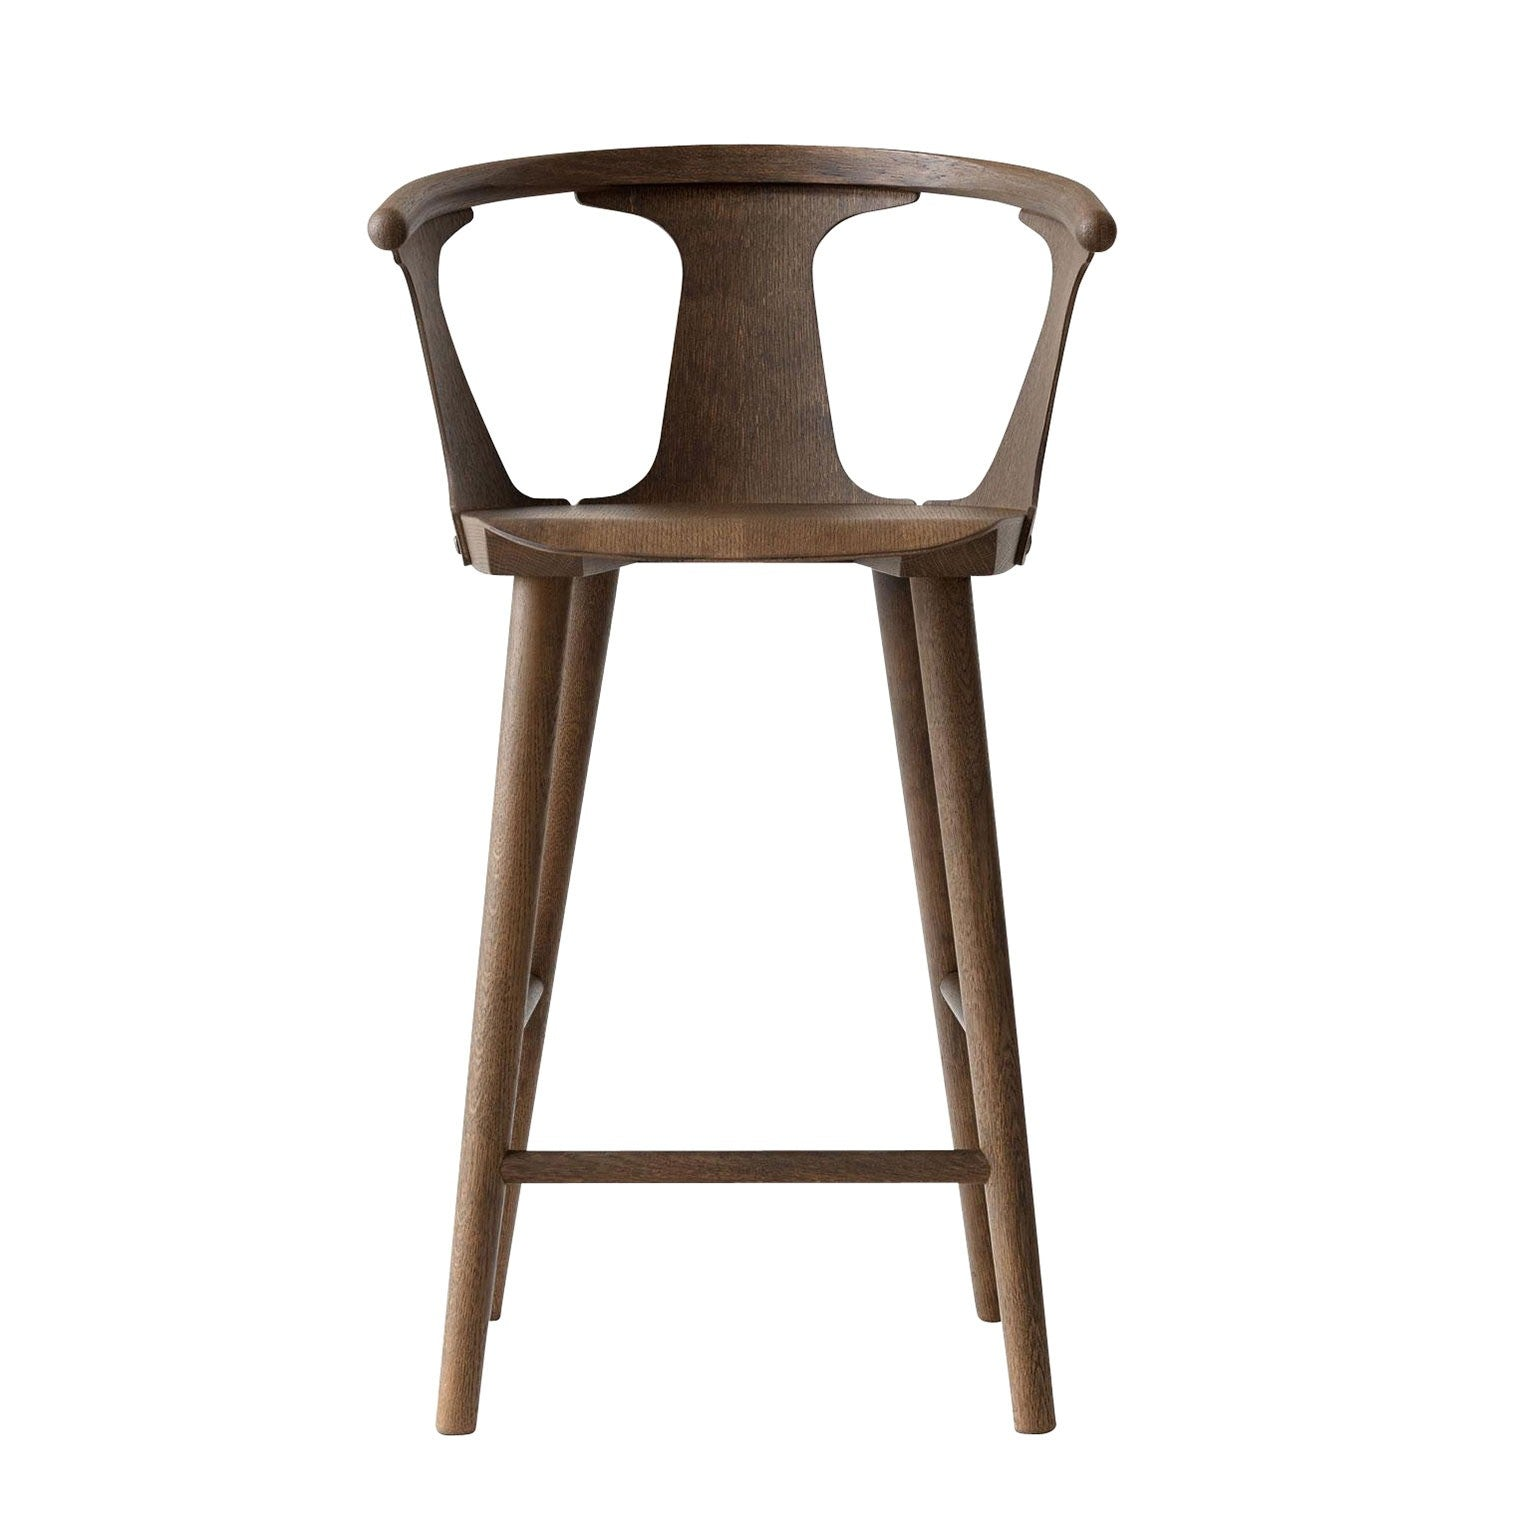 In Between SK9 Bar Stool